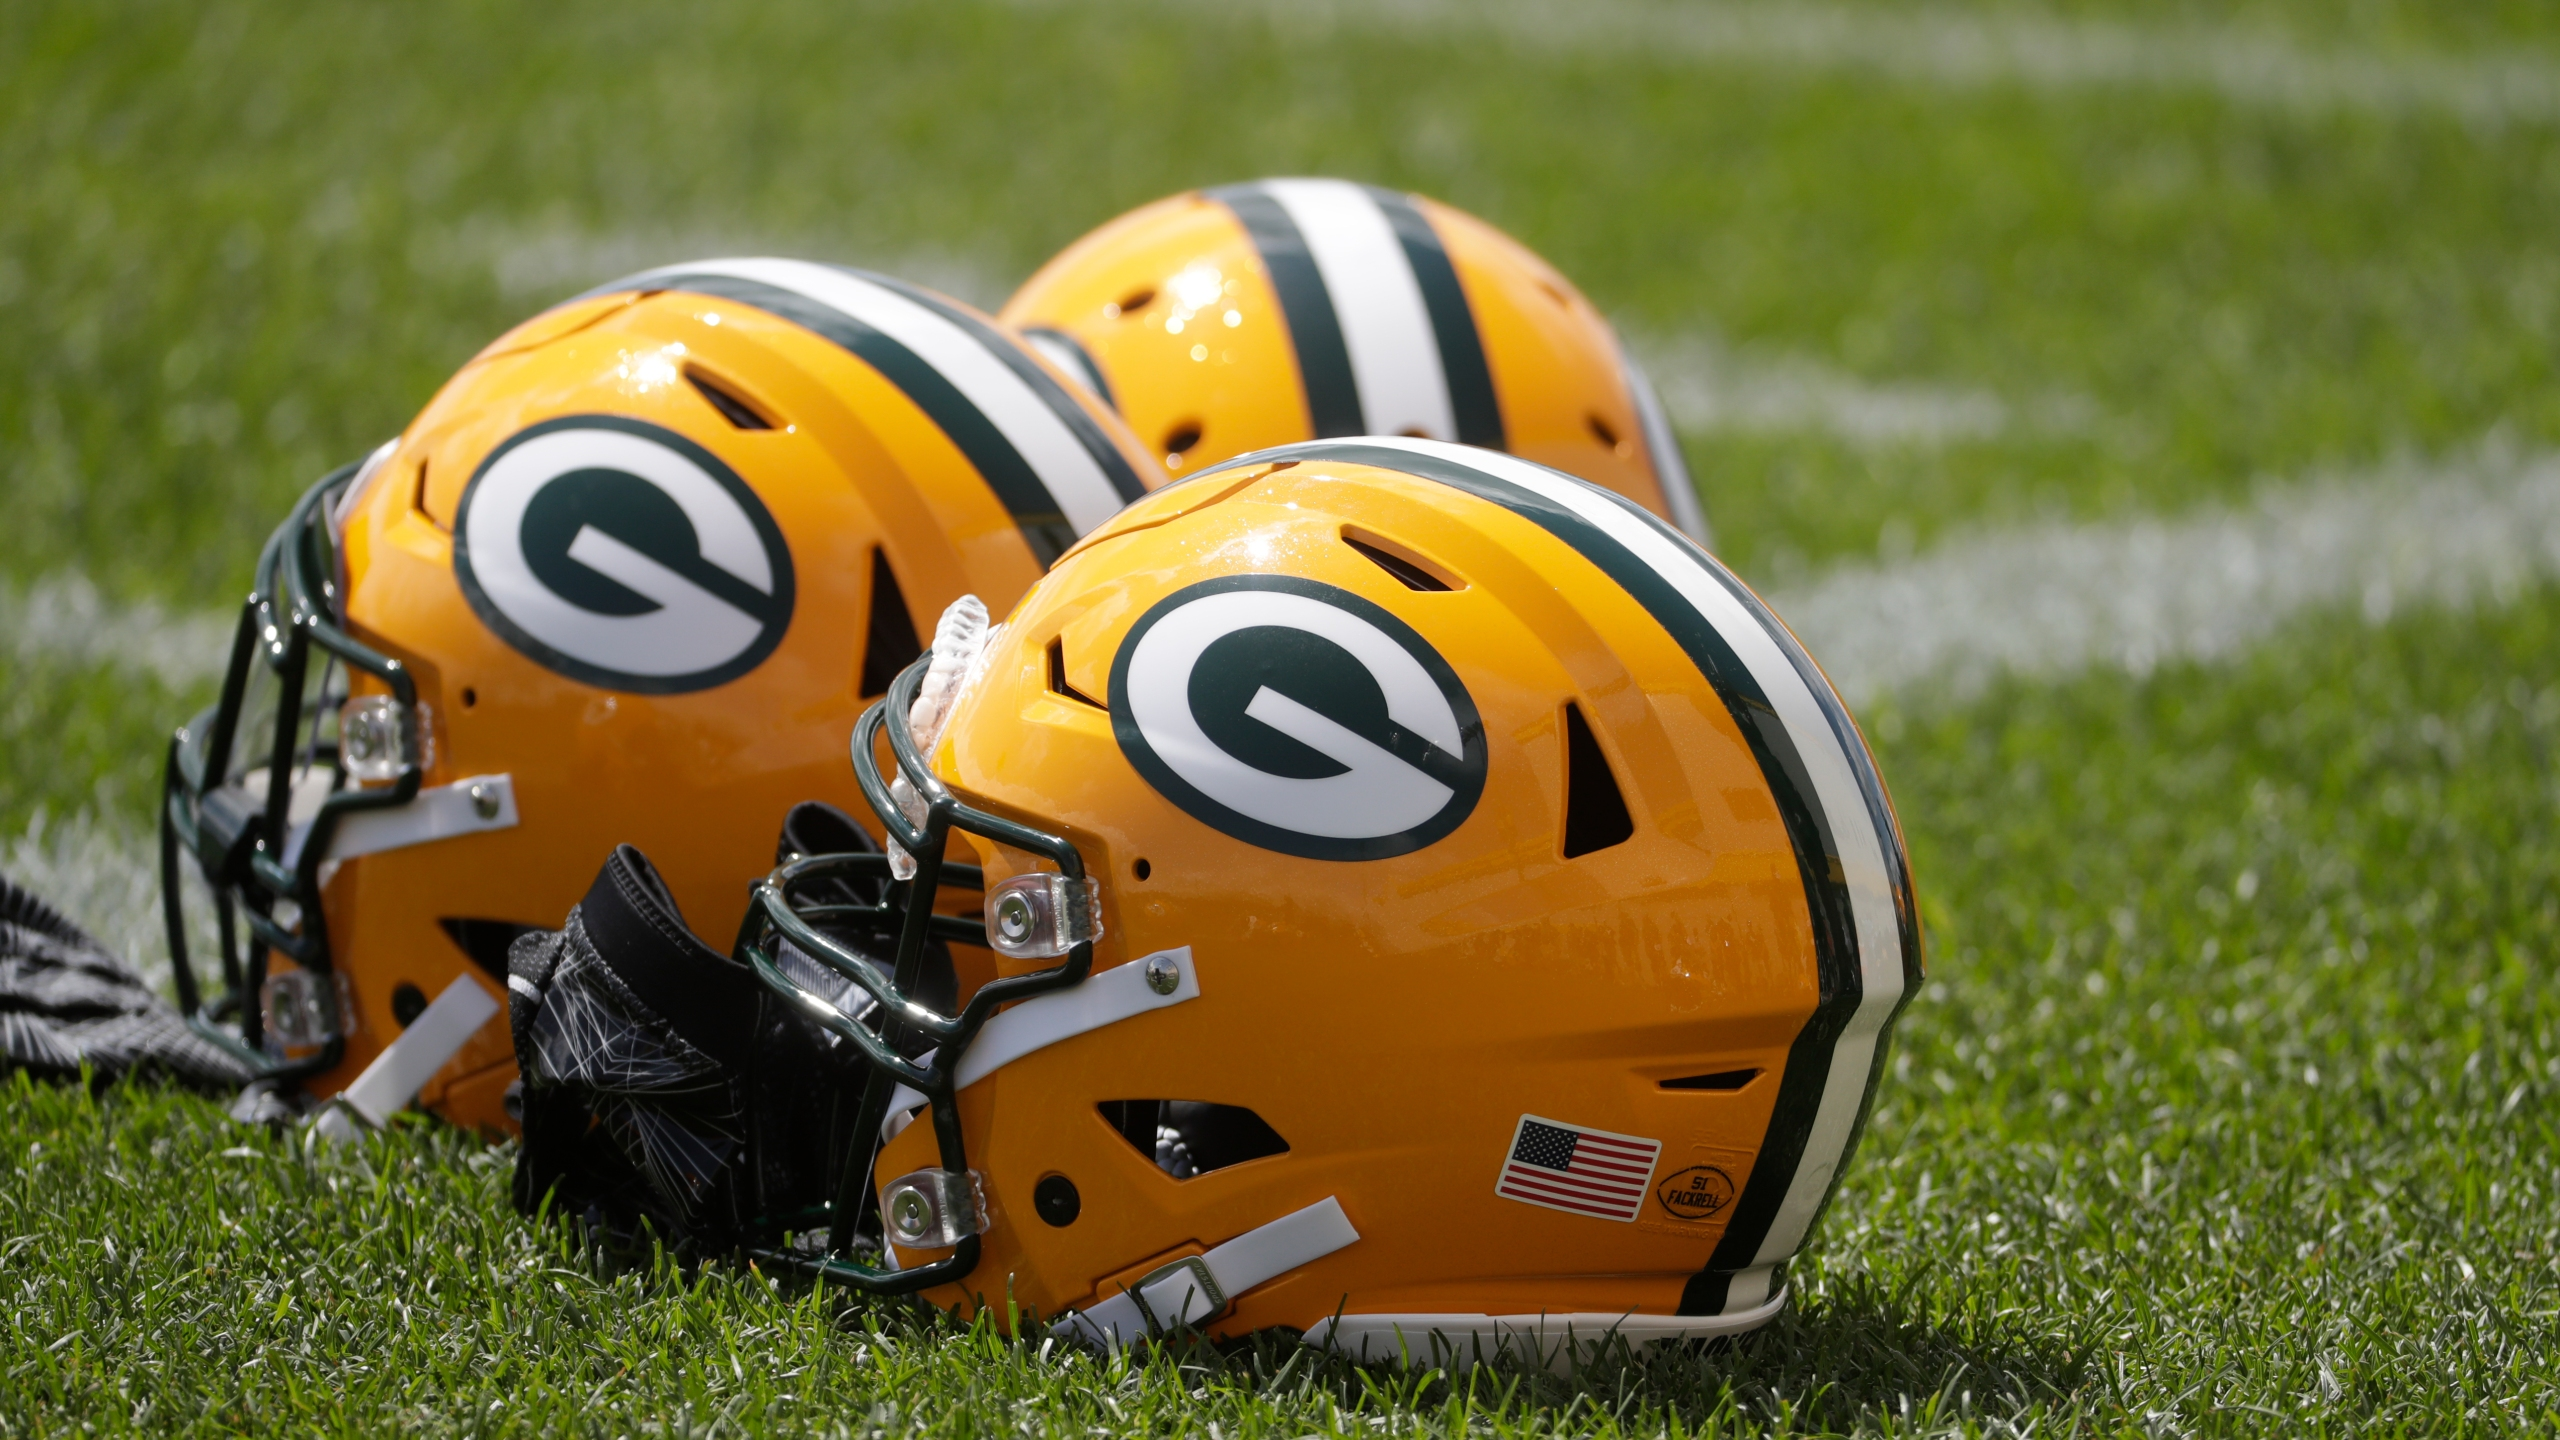 Packers Make Cuts Trim Roster To 53 Players Wfrv Local 5 Green Bay Appleton